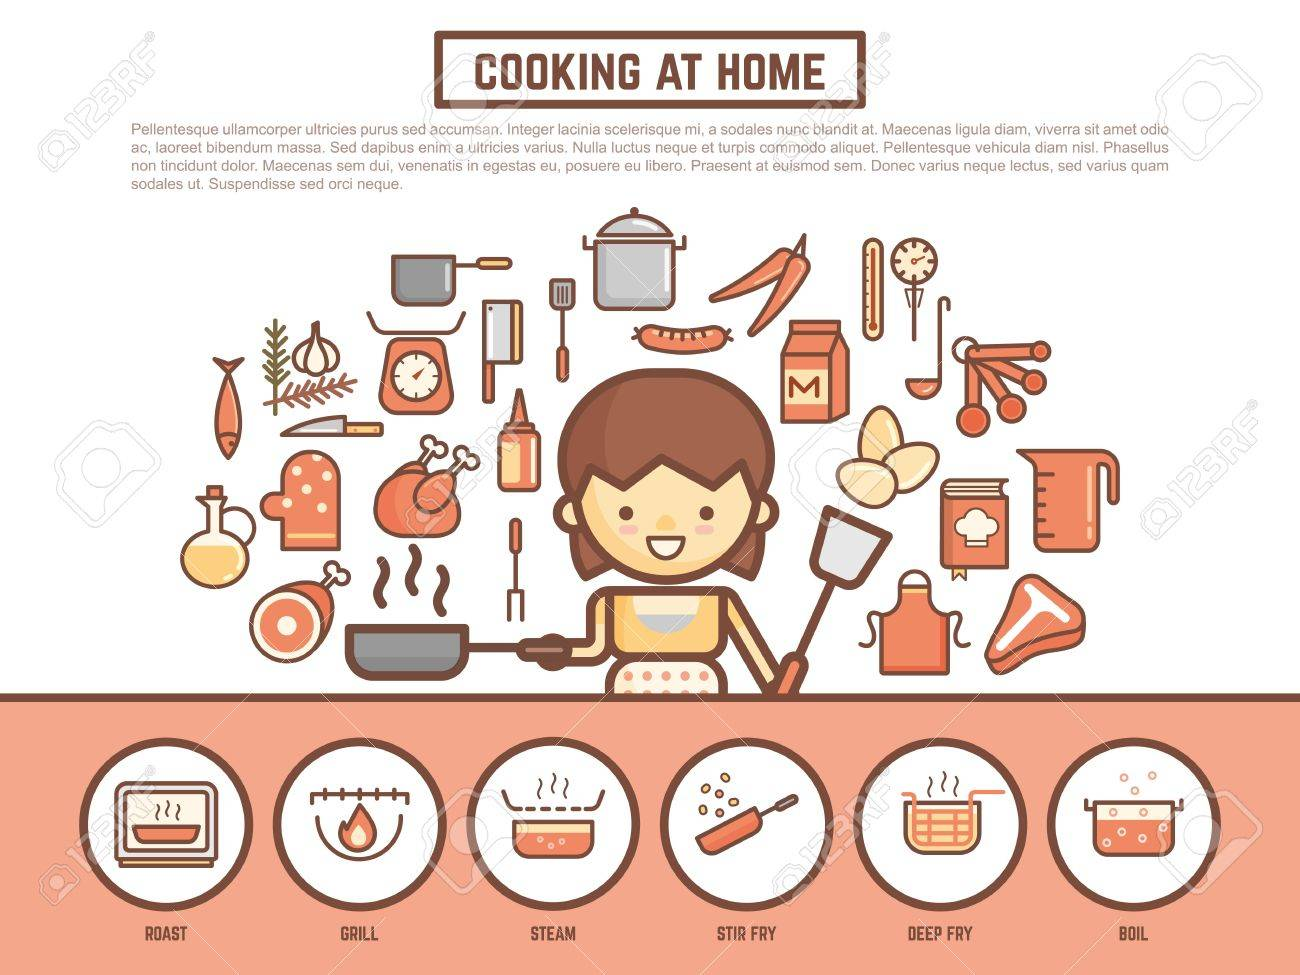 Home Cooking Banner Background Cute Outline Cartoon Character Royalty Free Cliparts Vectors And Stock Illustration Image 62675348